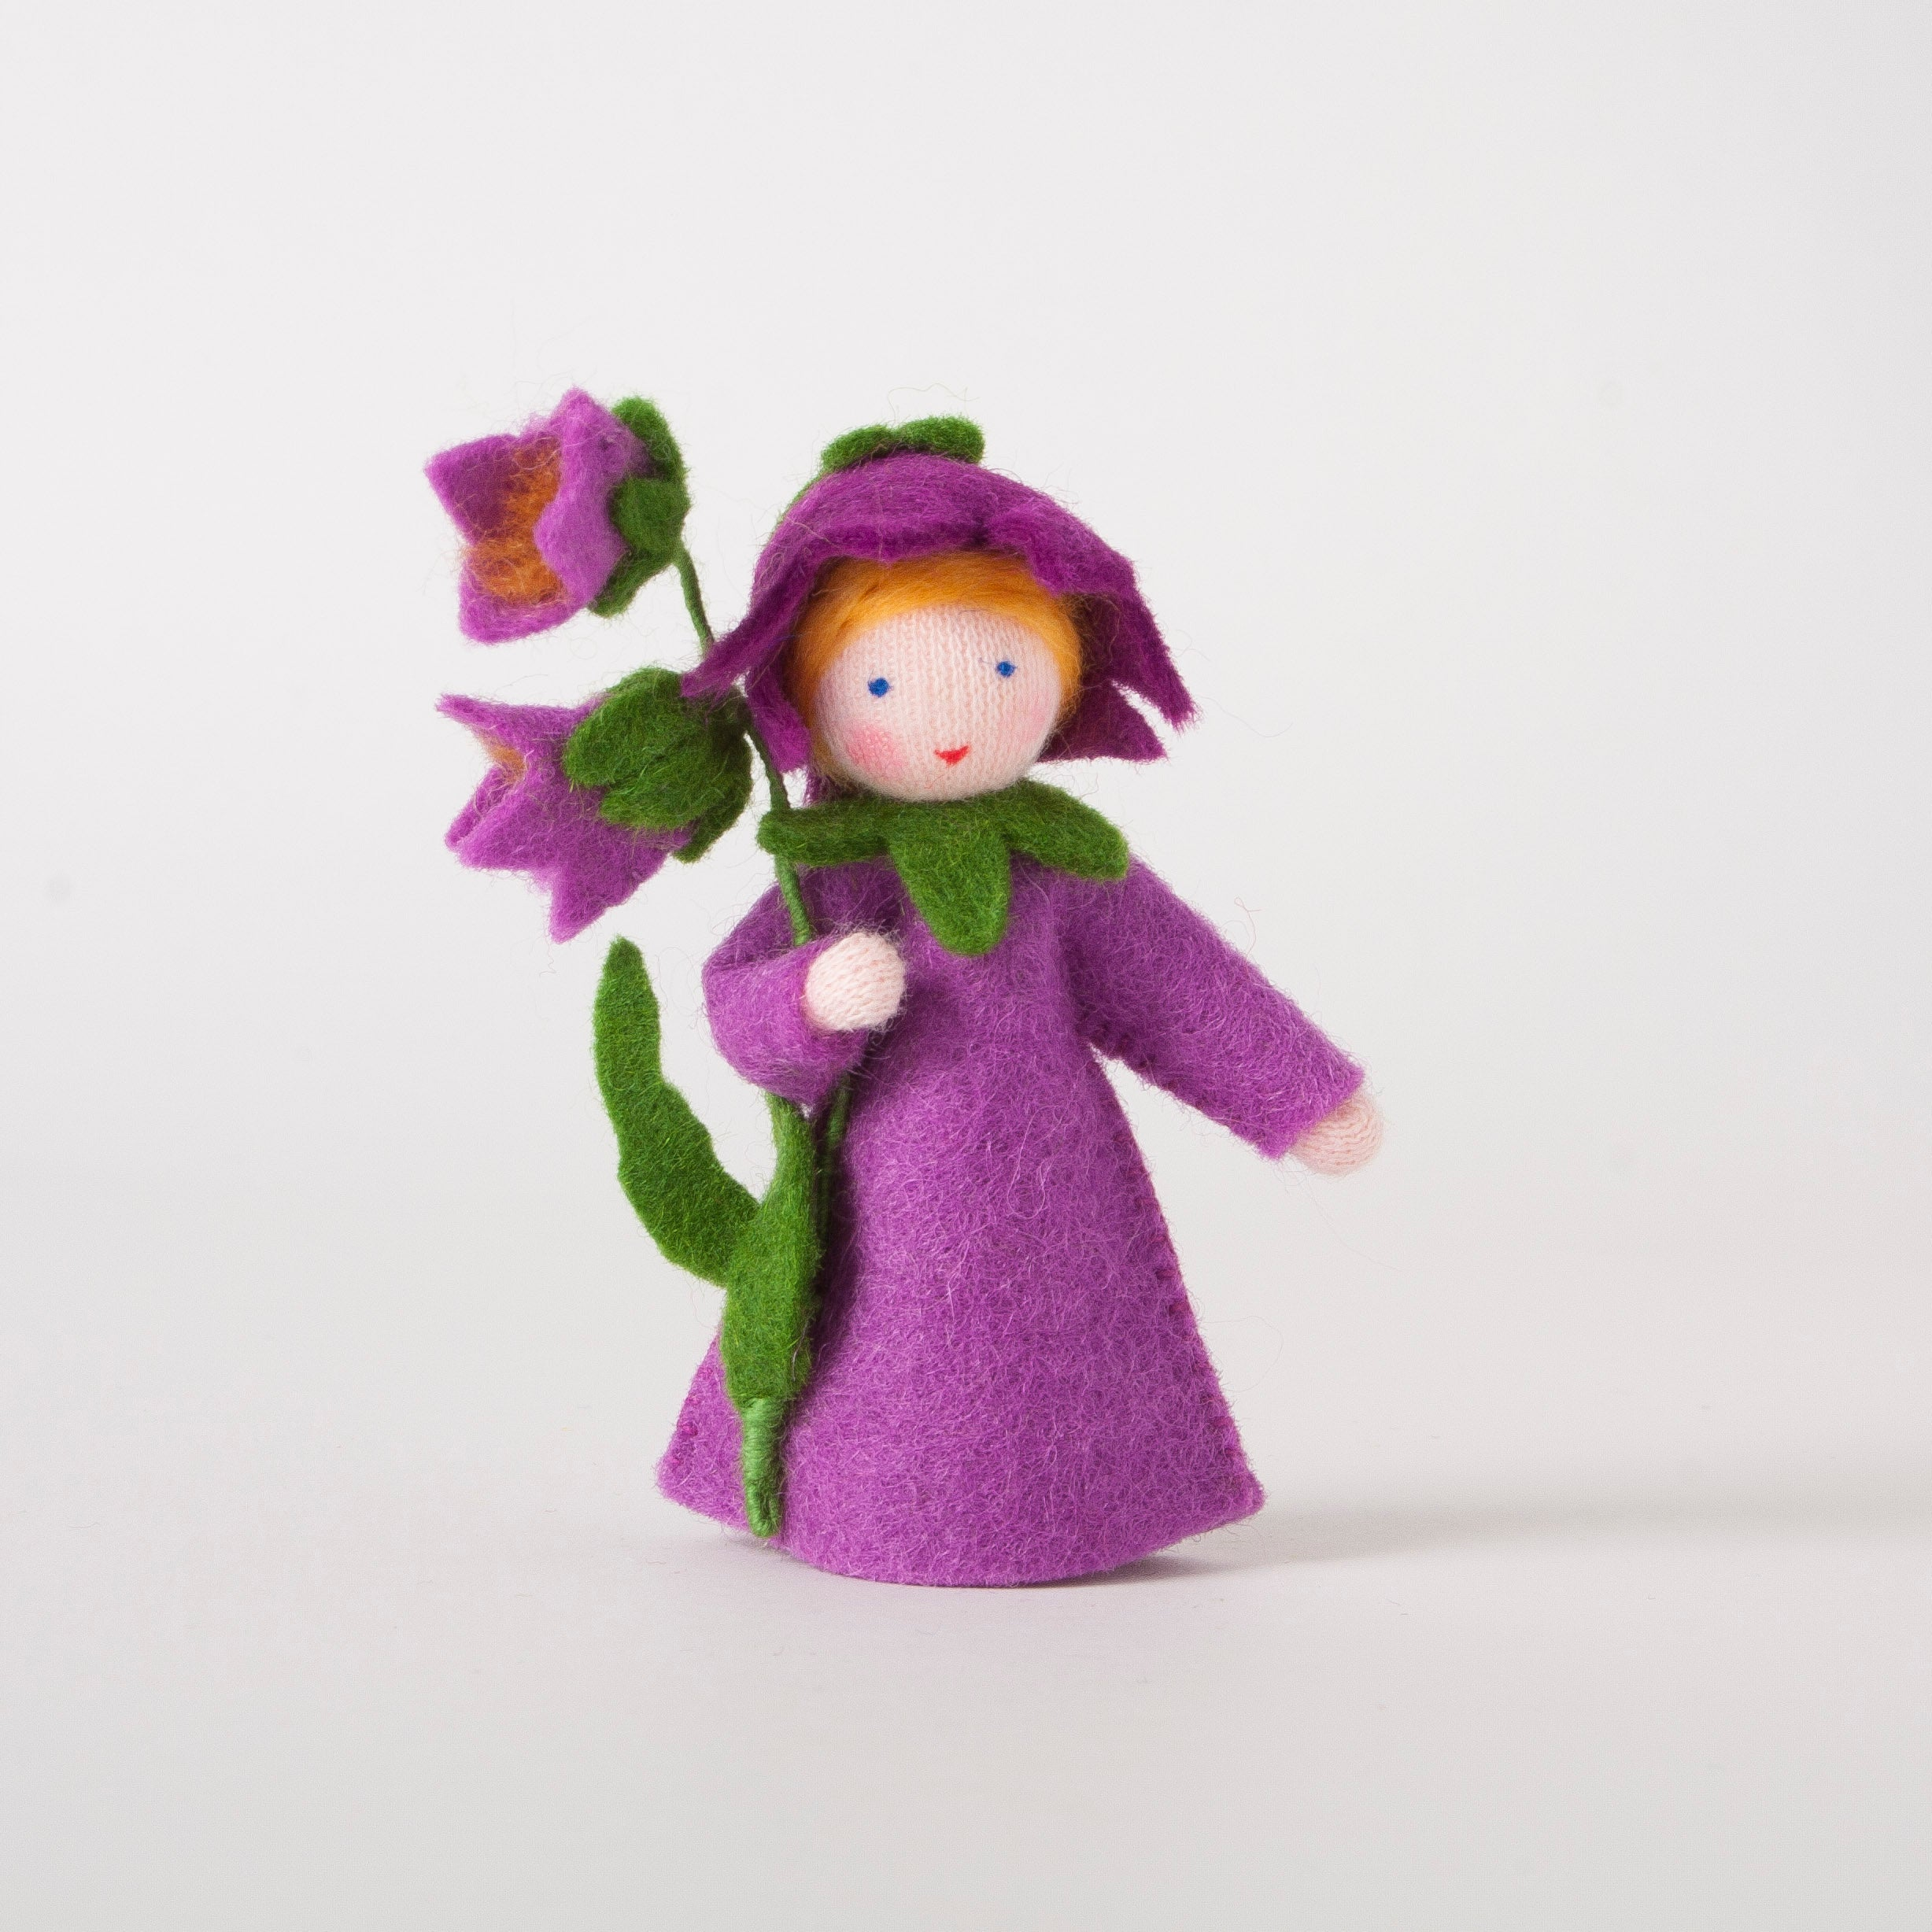 Purple FLower Felt Dolly from Ambrosius